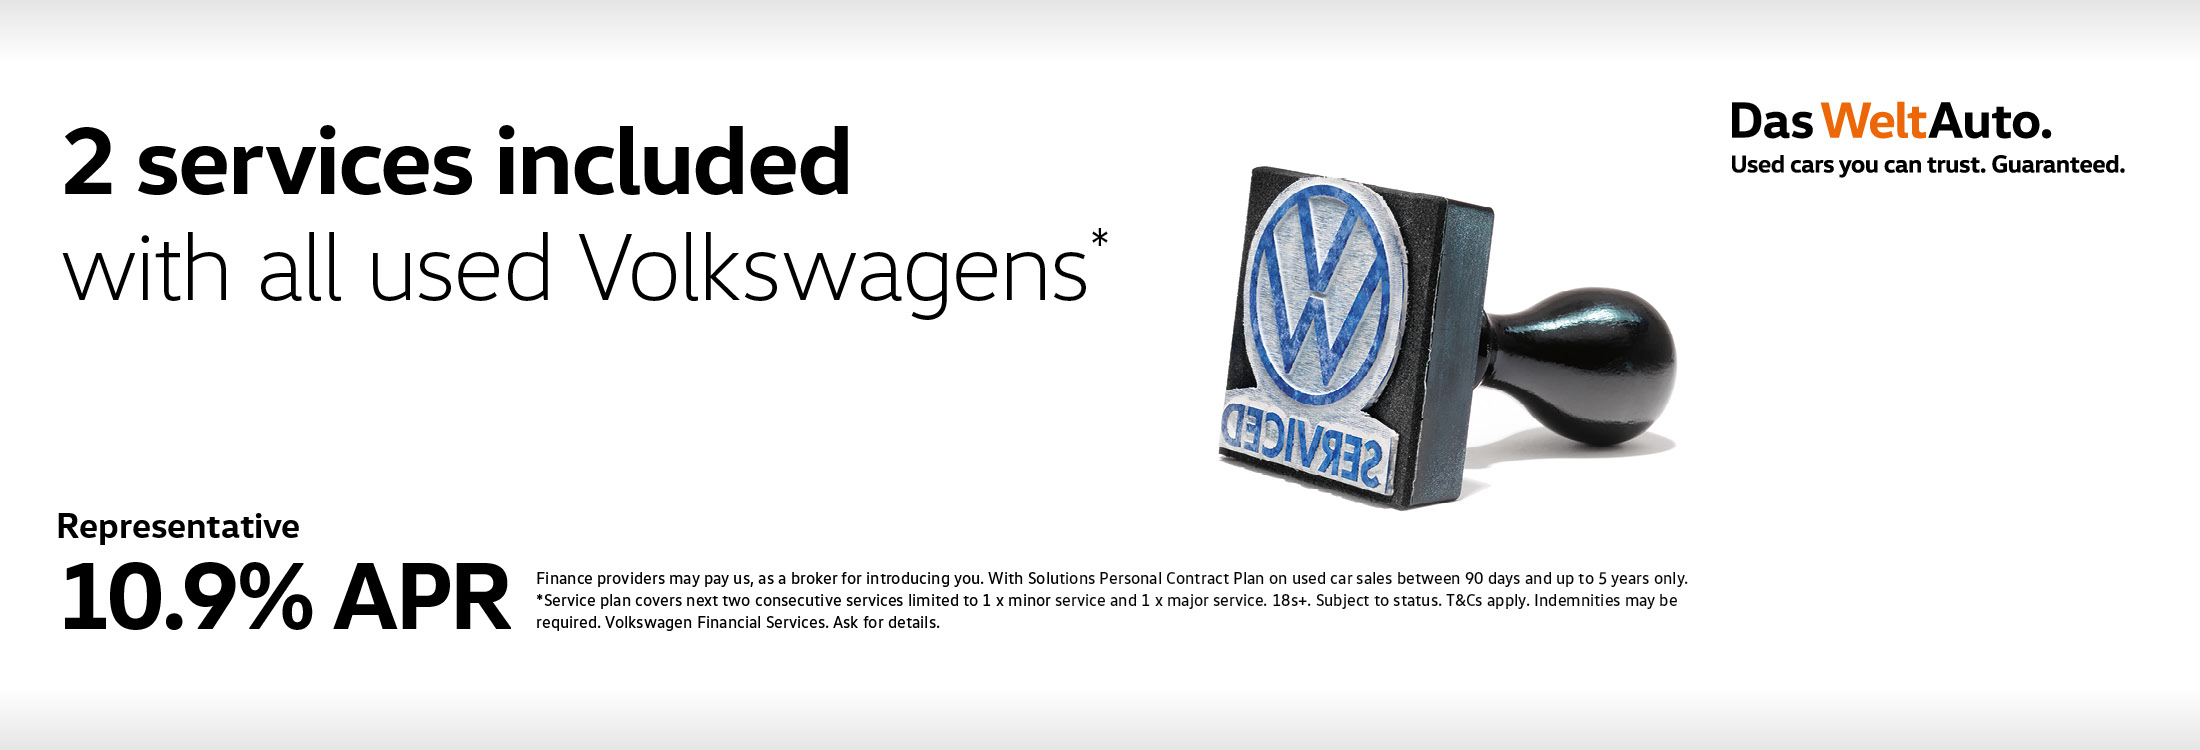 2 services included with all volkswagens